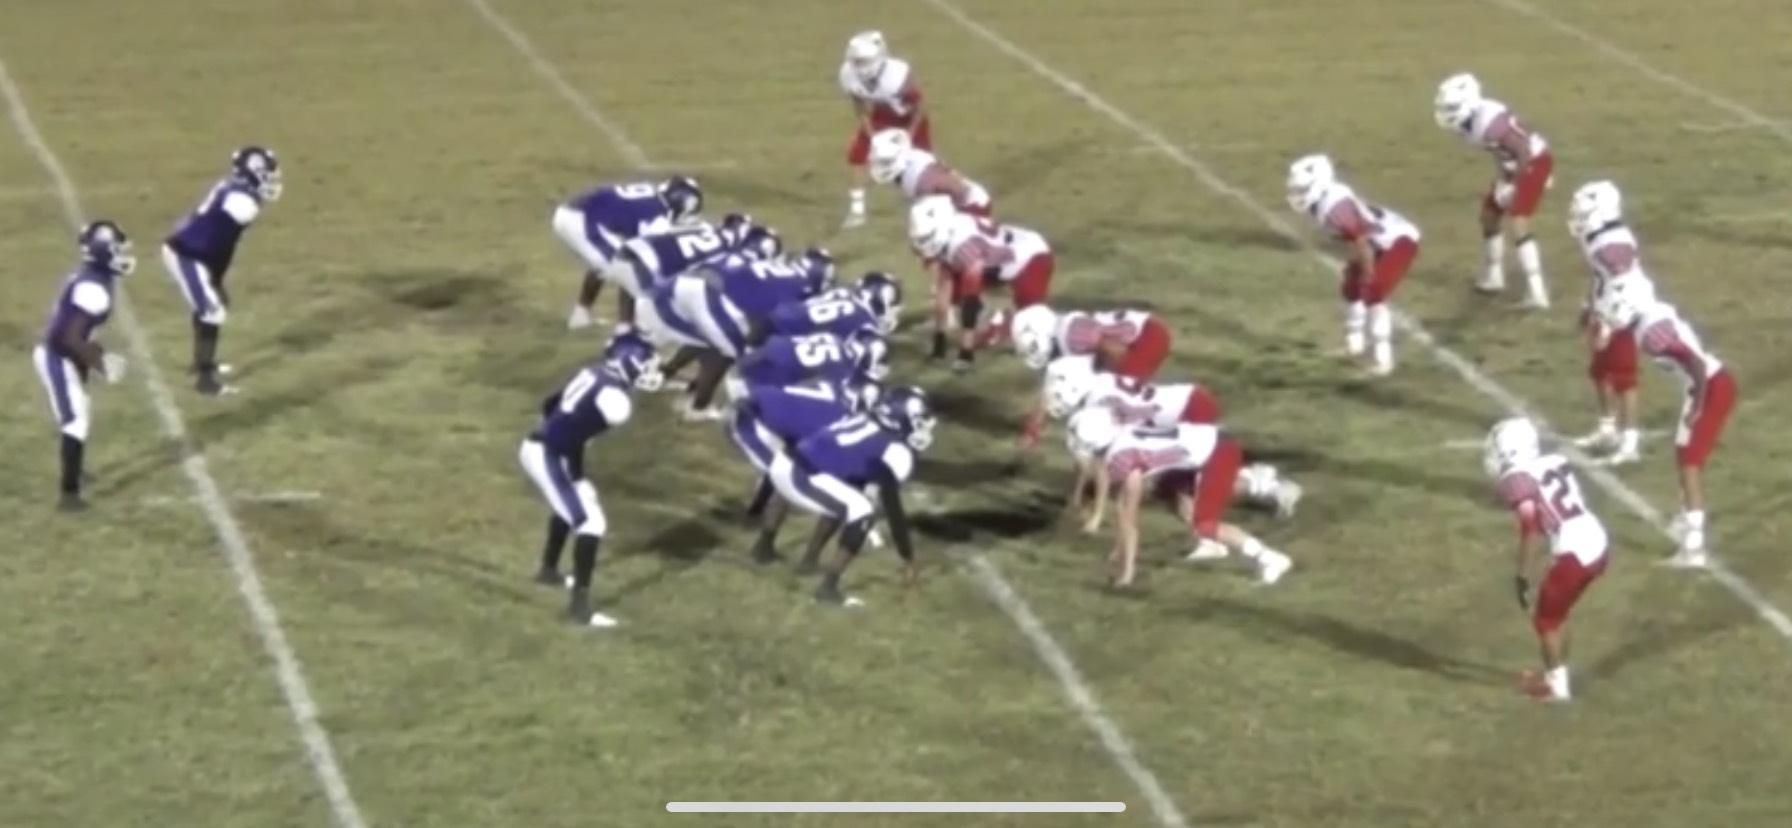 The Marlin Bulldogs won Friday's home district game against the Axtell Longhorns with a score of 62-24.